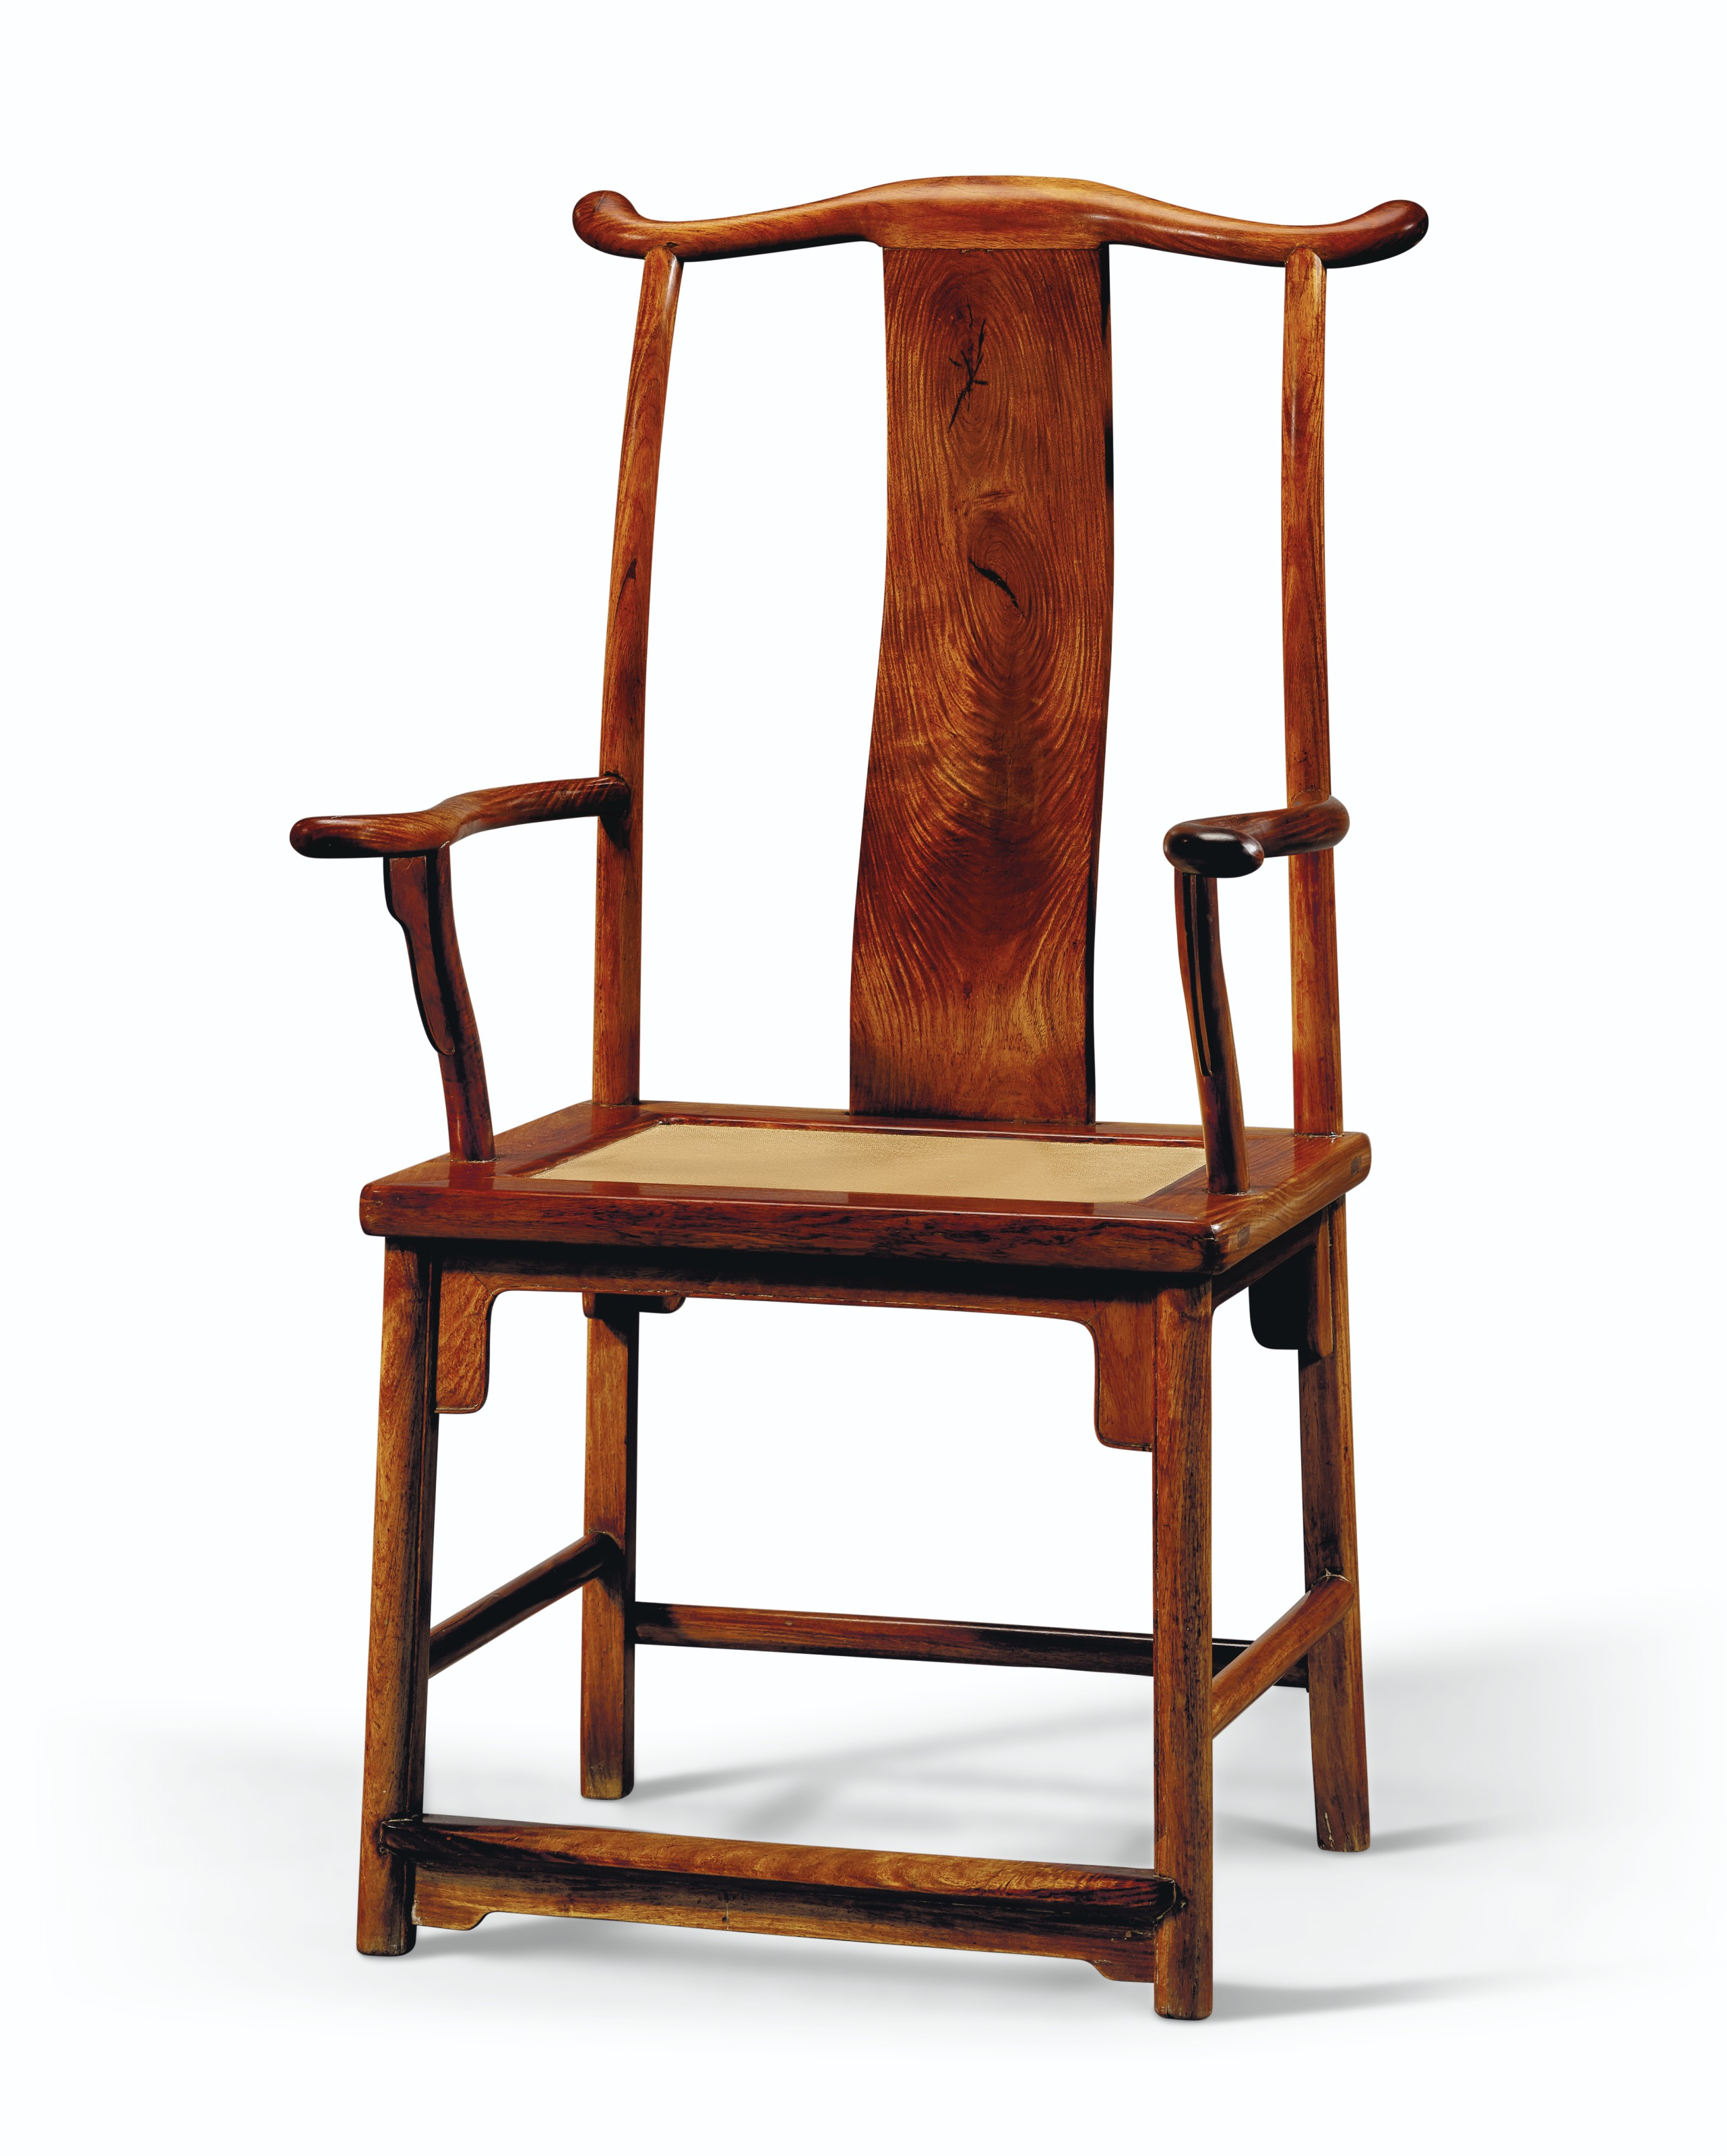 A RARE PAIR OF HUANGHUALI 'OFFICIAL'S HAT' ARMCHAIRS